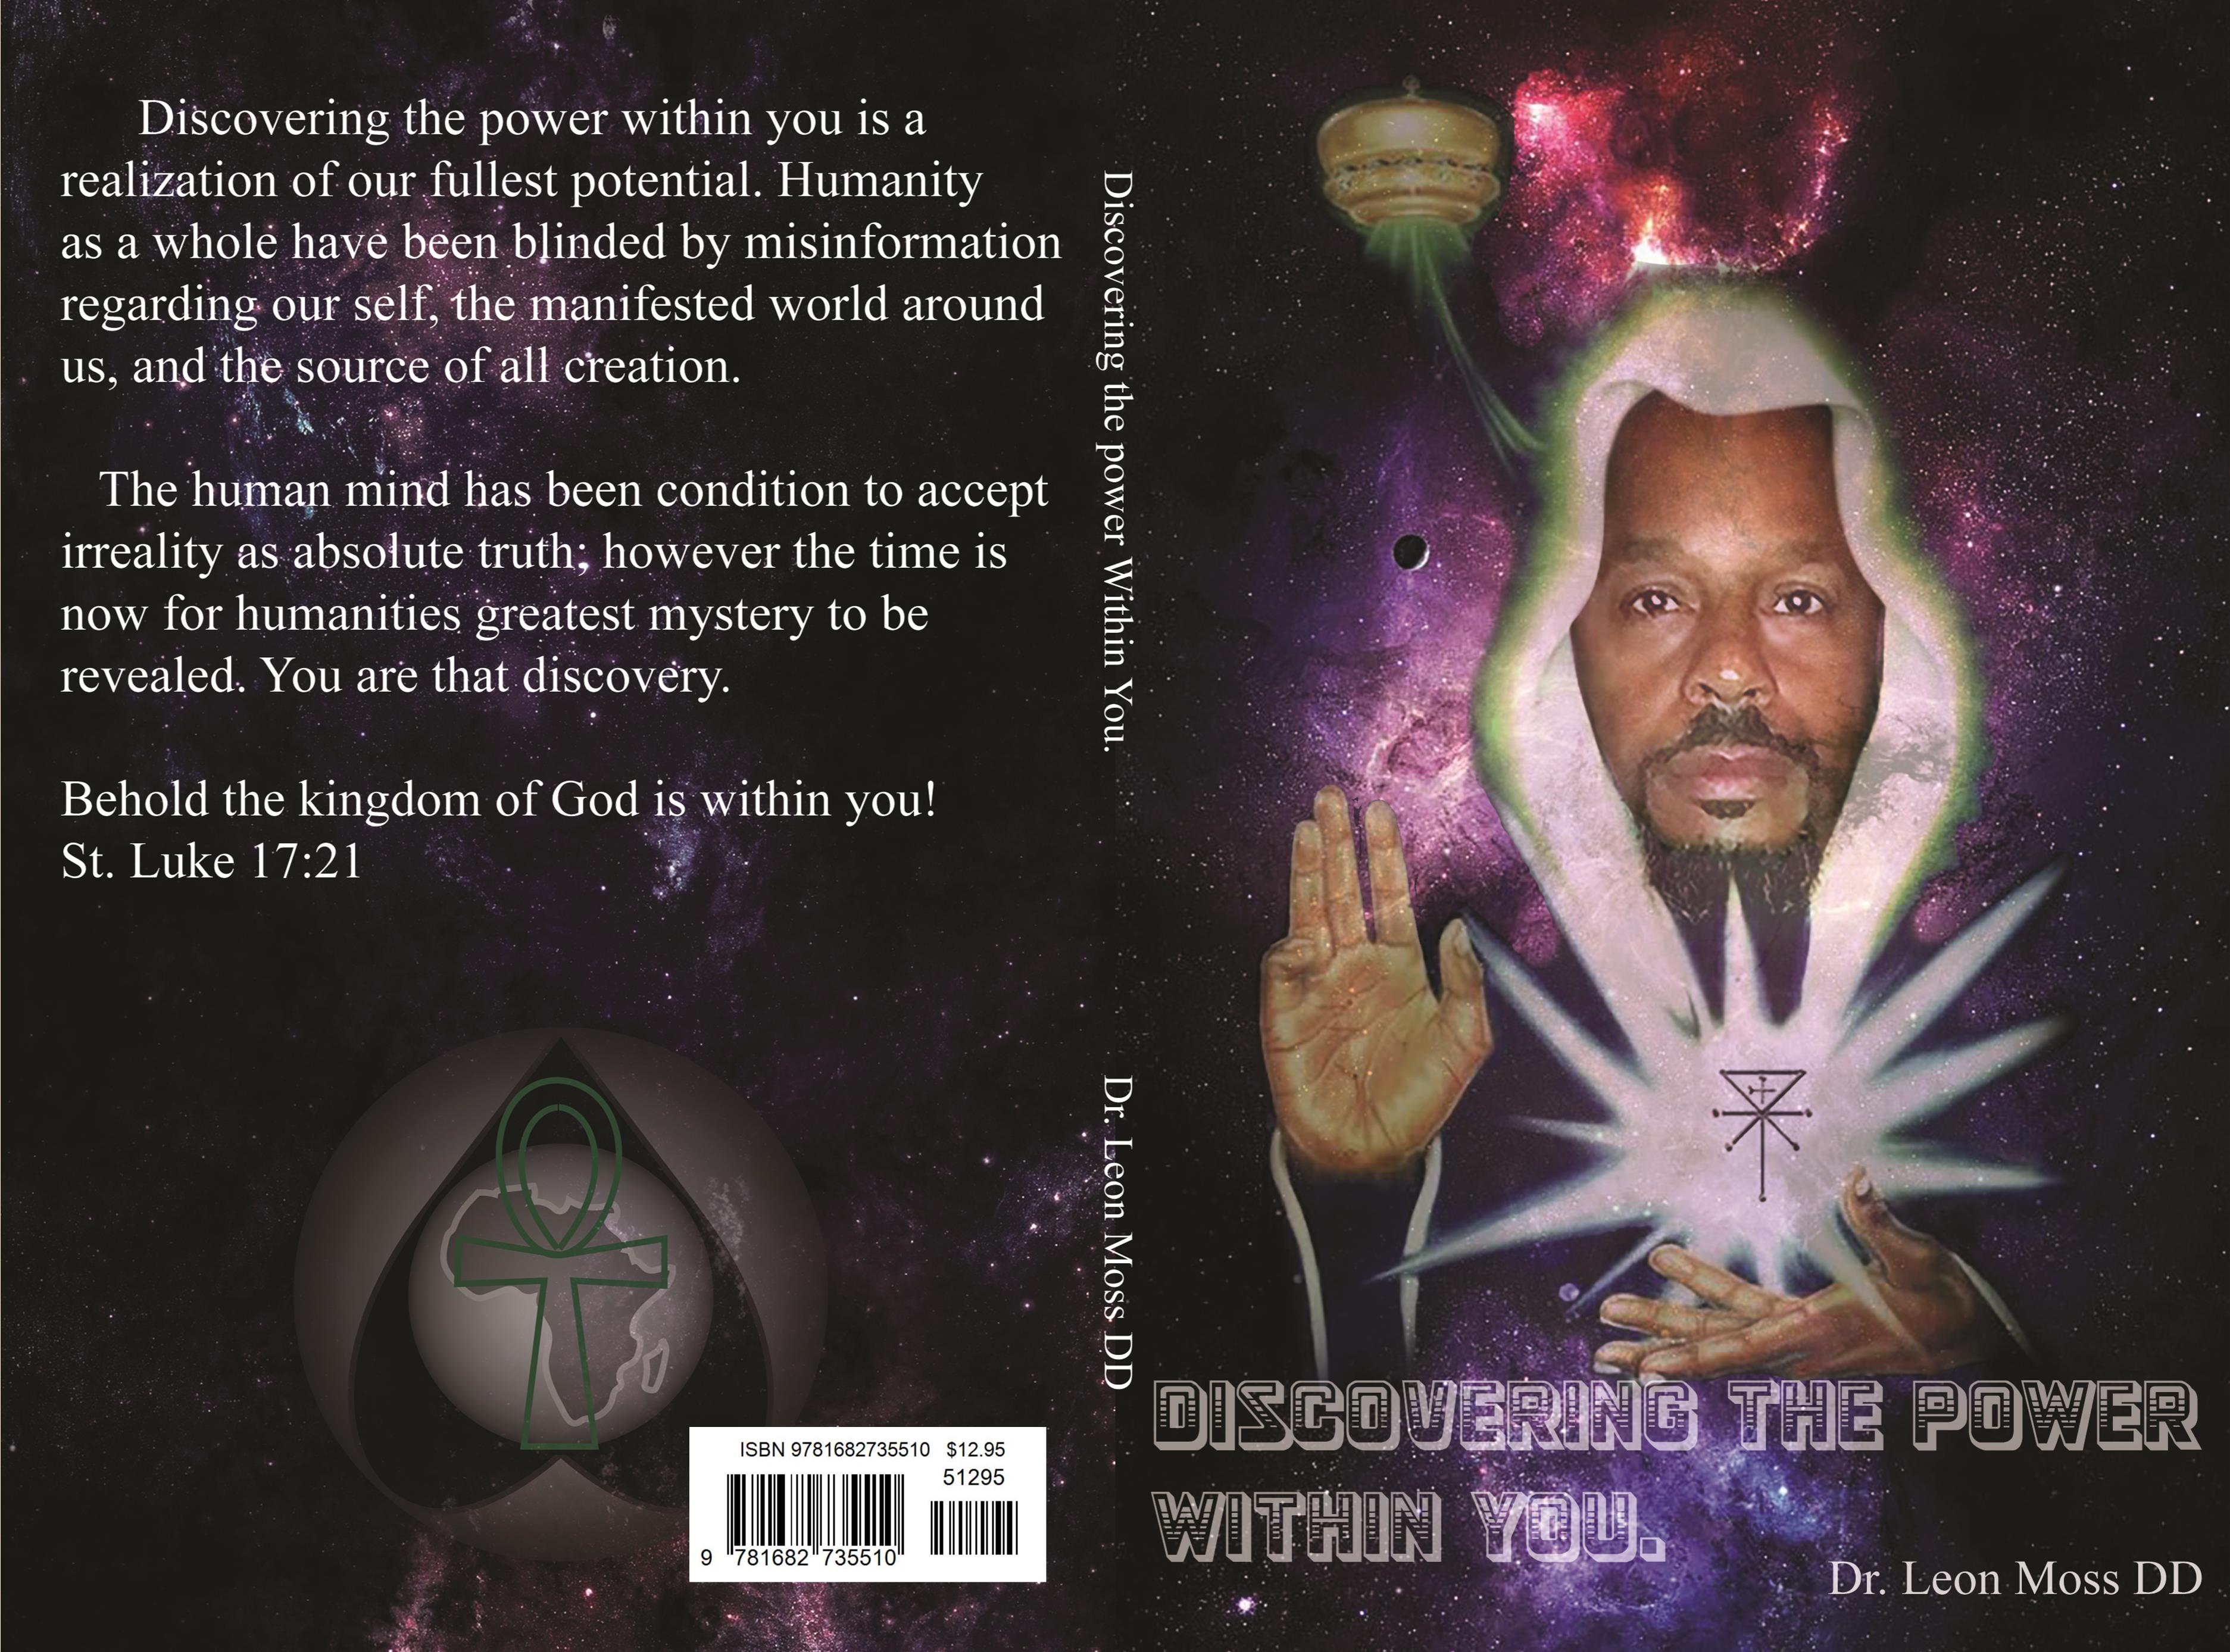 Discovering The Power Within You! cover image